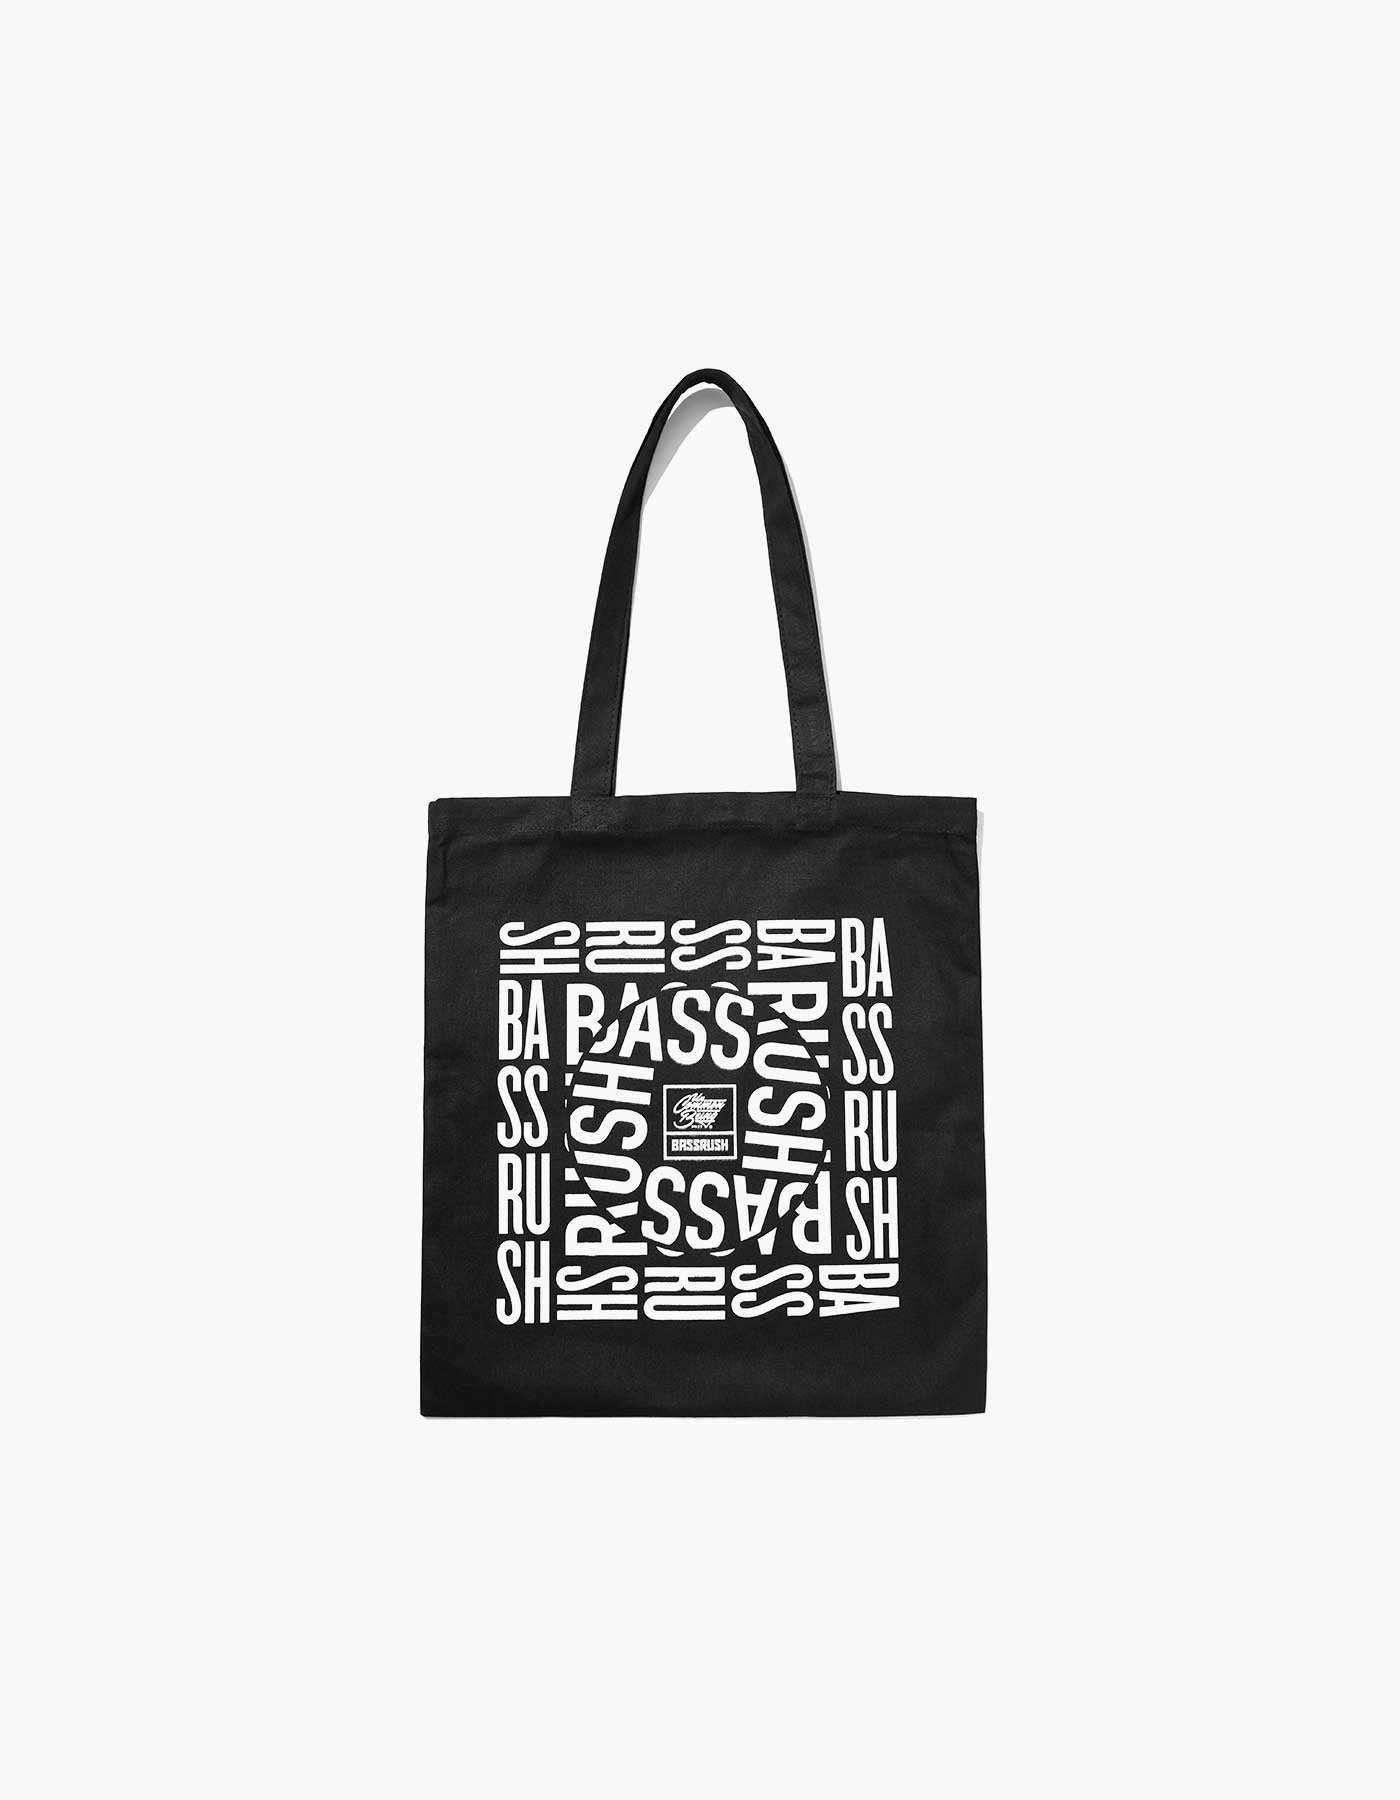 Bassrush x Uncommon Being Tote Bag